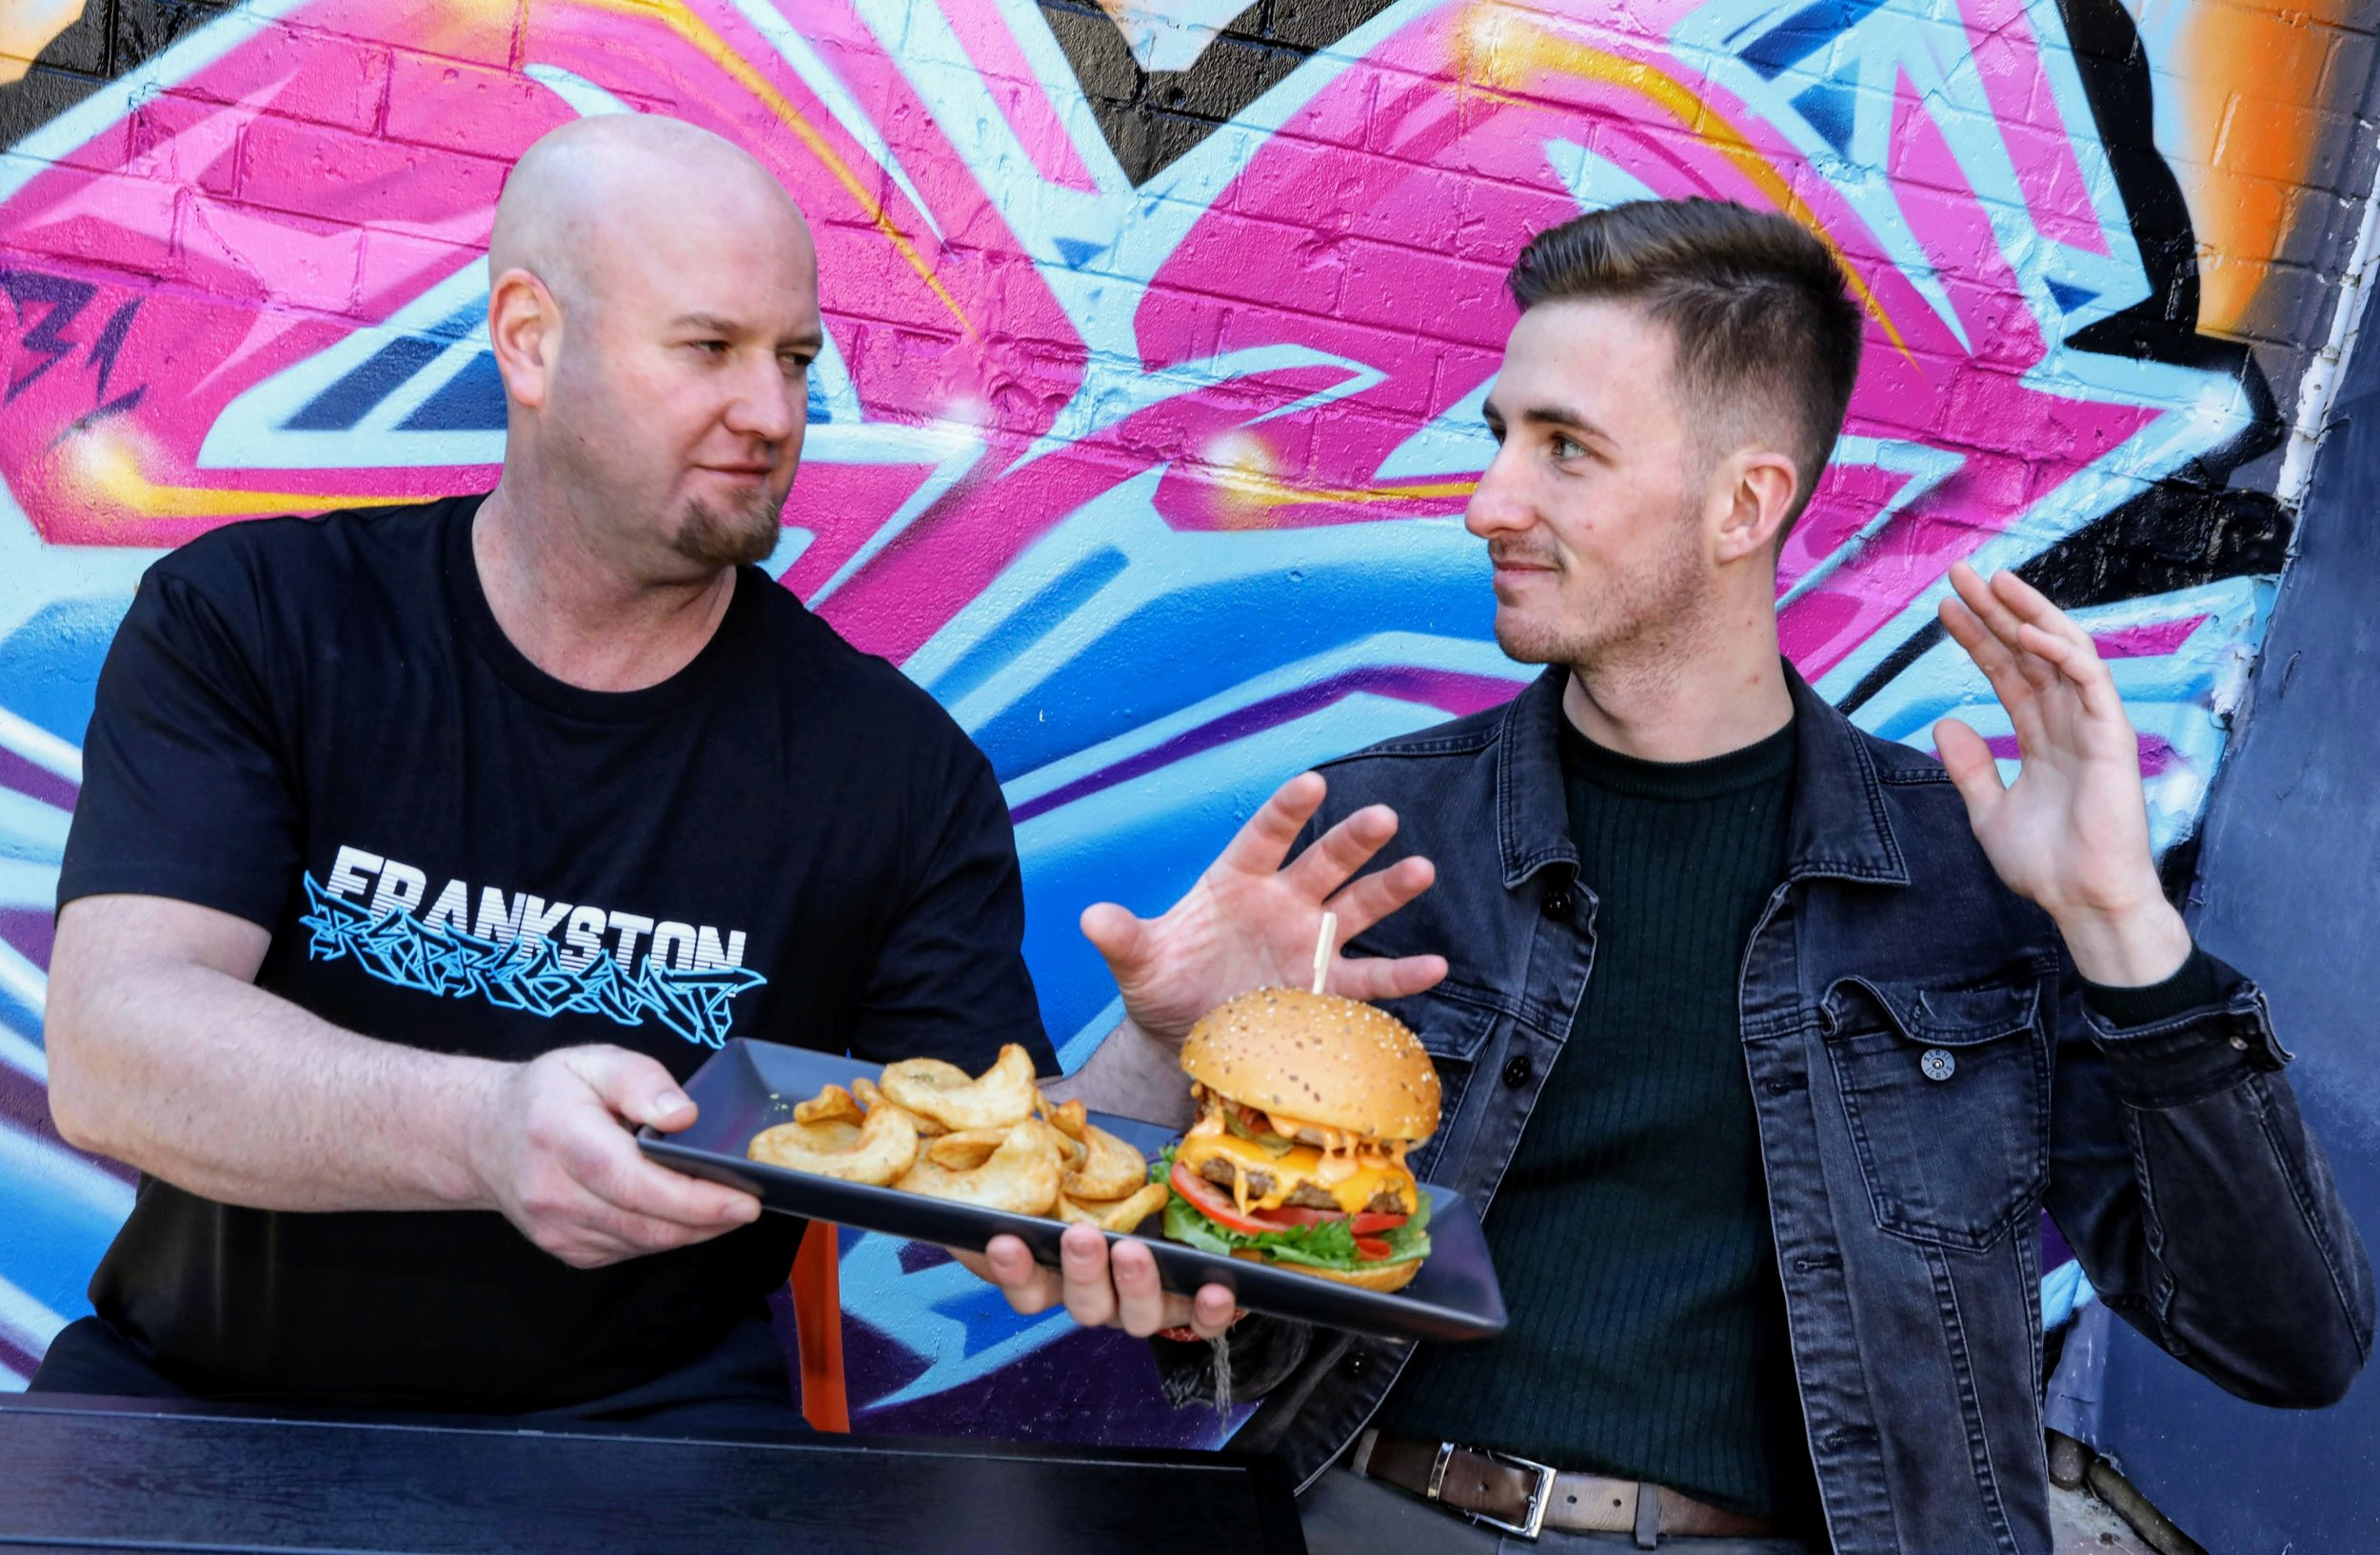 Frankston Mayor Michael O'Reilly serves Youth Mayor Aaron Quarrell a burger during Frankston City Council's Burger Off competition. Photo by Steve Brown